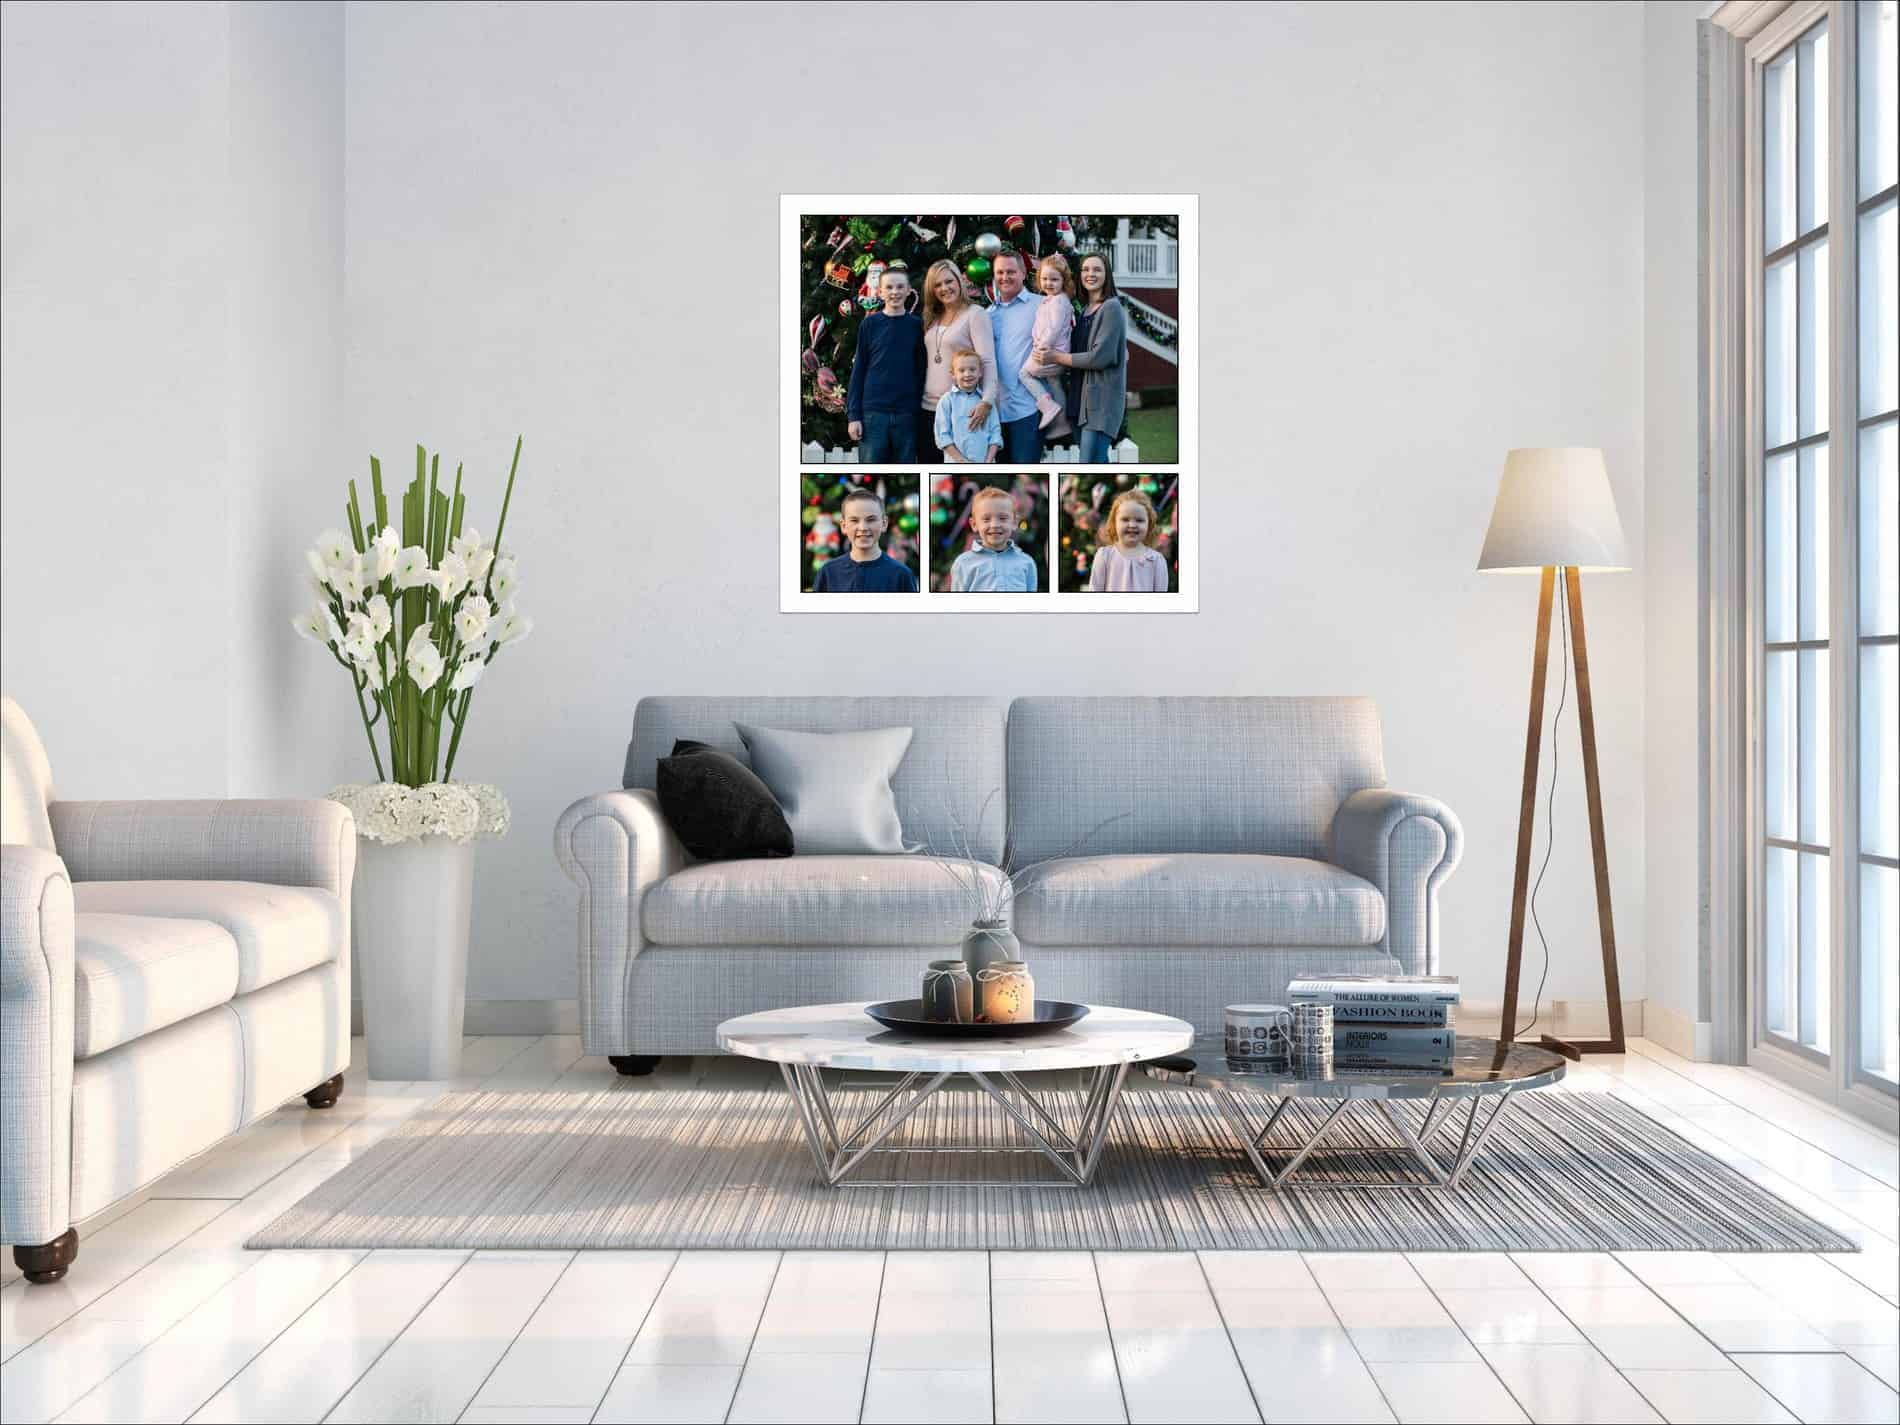 Mistretta Family Wall Art Collection 2